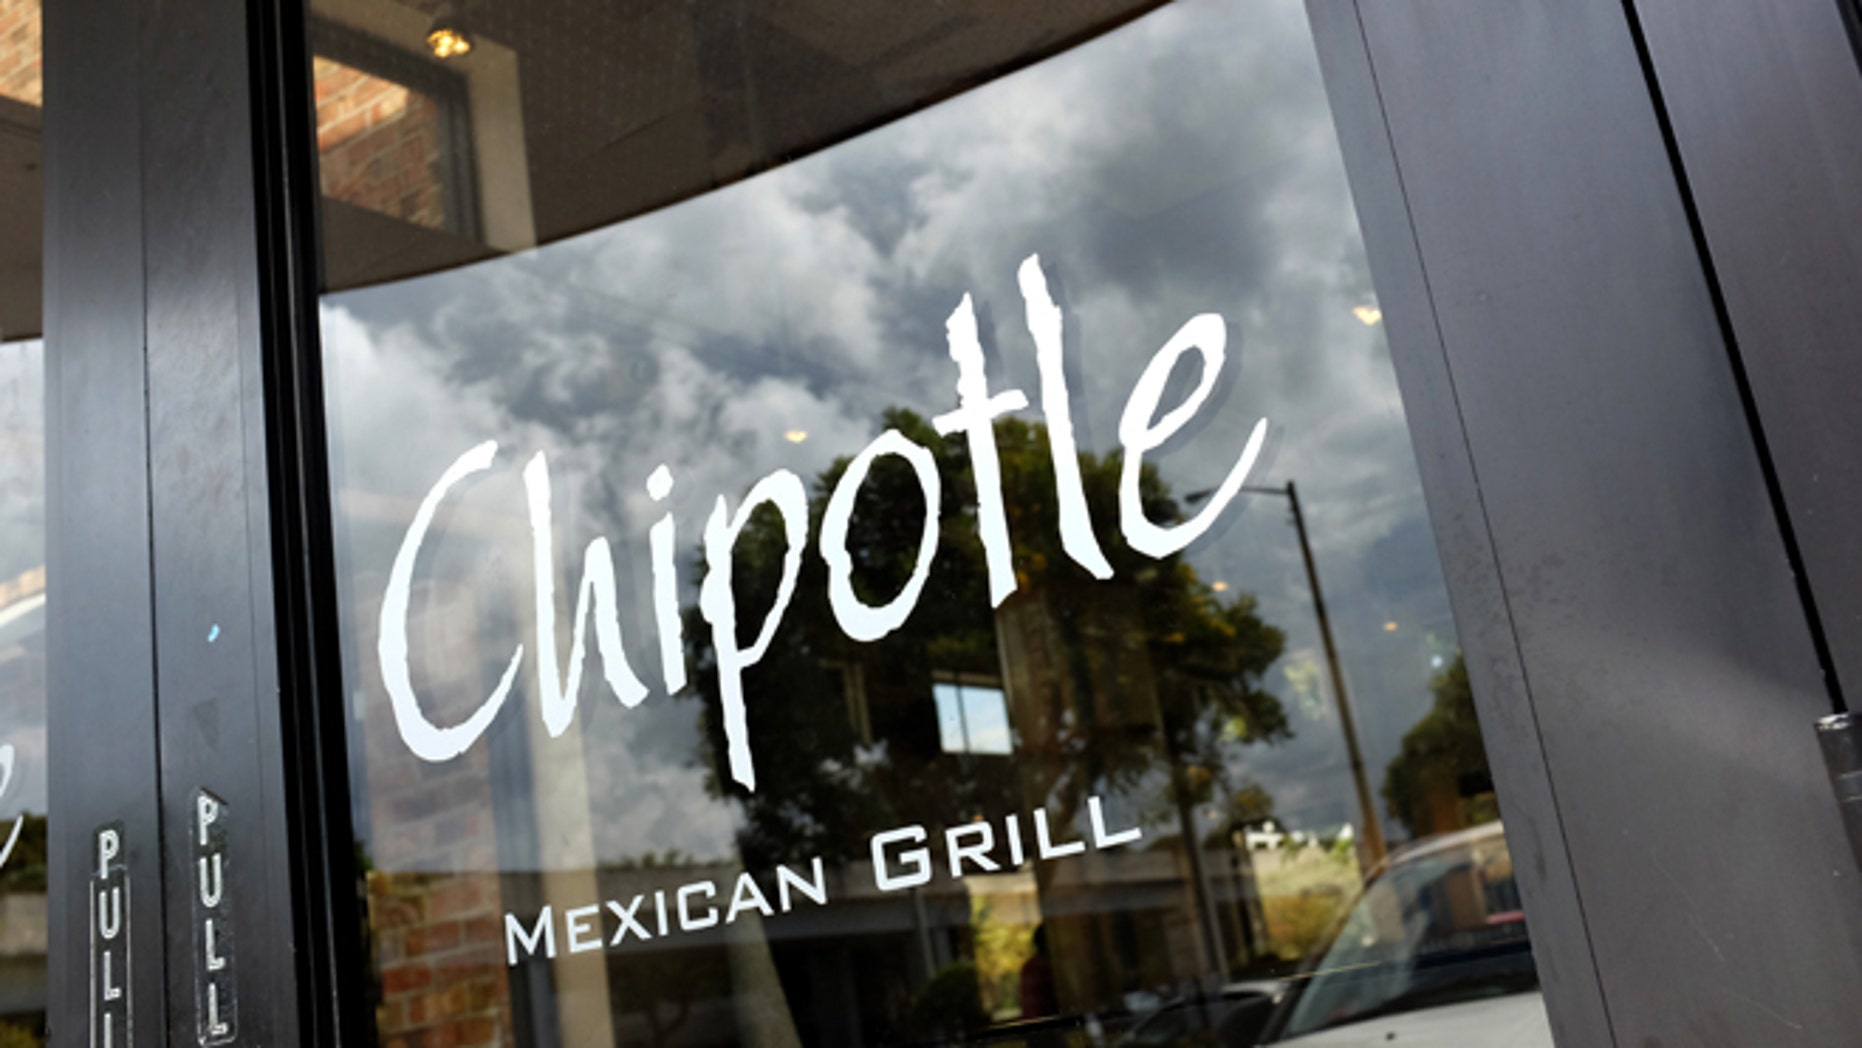 MIAMI, FL - MARCH 05:  A Chipotle restaurant is seen on March 5, 2014 in Miami, Florida. The Mexican fast food chain is reported to have tossed around the idea that it would temporarily suspend sales of guacamole due to an increase in food costs.  (Photo by Joe Raedle/Getty Images)